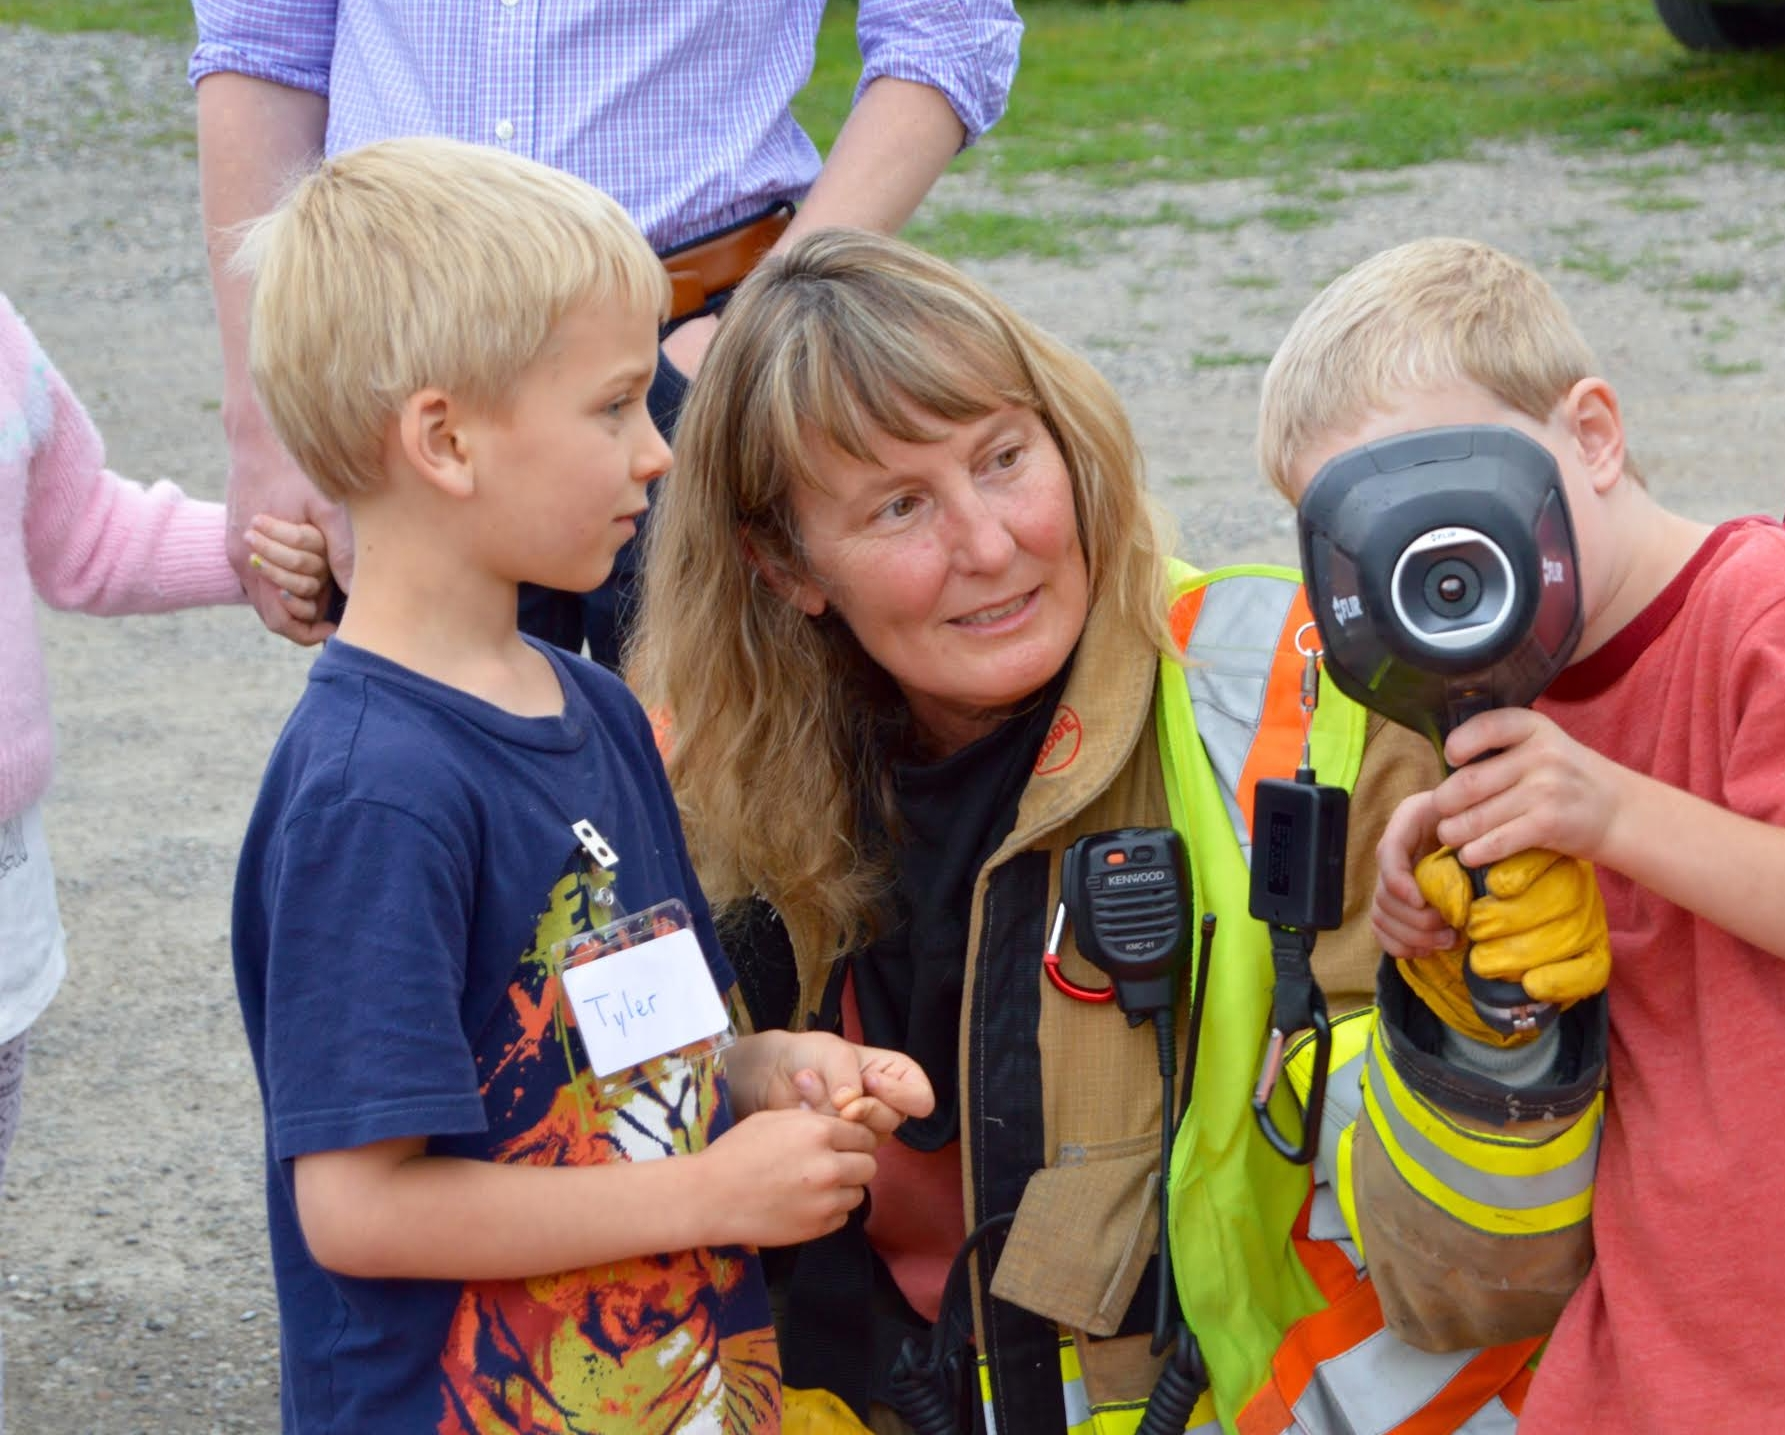 Volunteer Chris Wood demonstrates the use of a FLIR thermal imaging camera, which was donated by the local company this year.